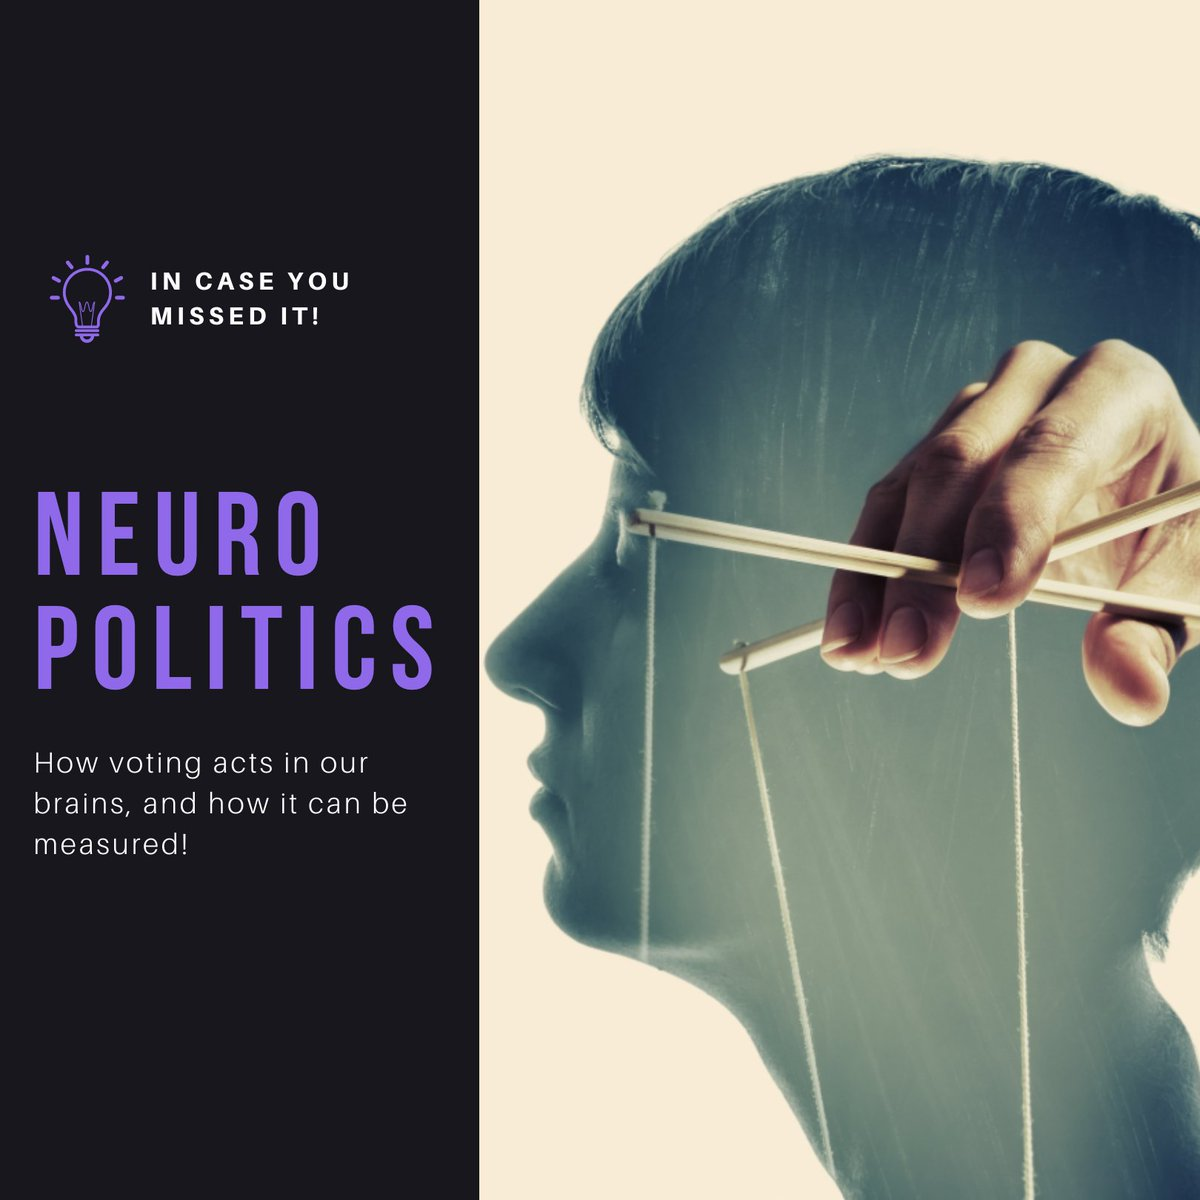 Ready for NeuroPolitics? https://t.co/nWCTsWPAOy  In case you missed our last post: what happens in the brains of voters? More relevant than ever, online voter polling can now also tap into voters' unconscious thoughts, feelings, and associations.  #neuromarketing #neuropolitics https://t.co/PWYUl962yY